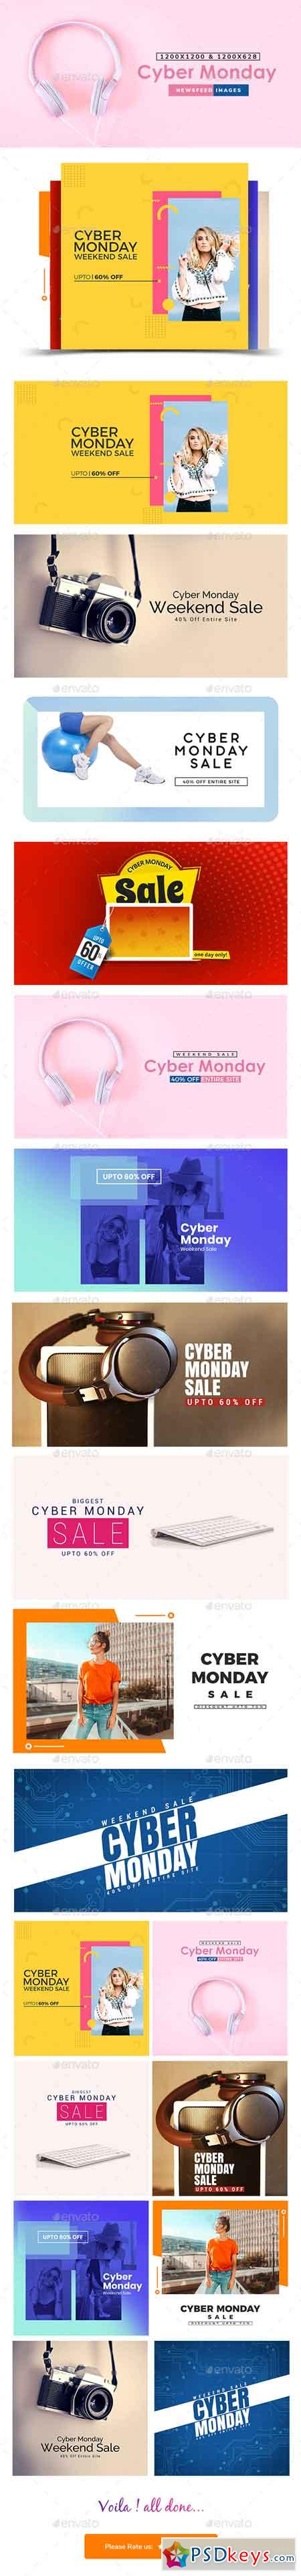 Cyber Monday Sale Facebook and Instagram Newsfeed Banners - 10 Designs 22882443